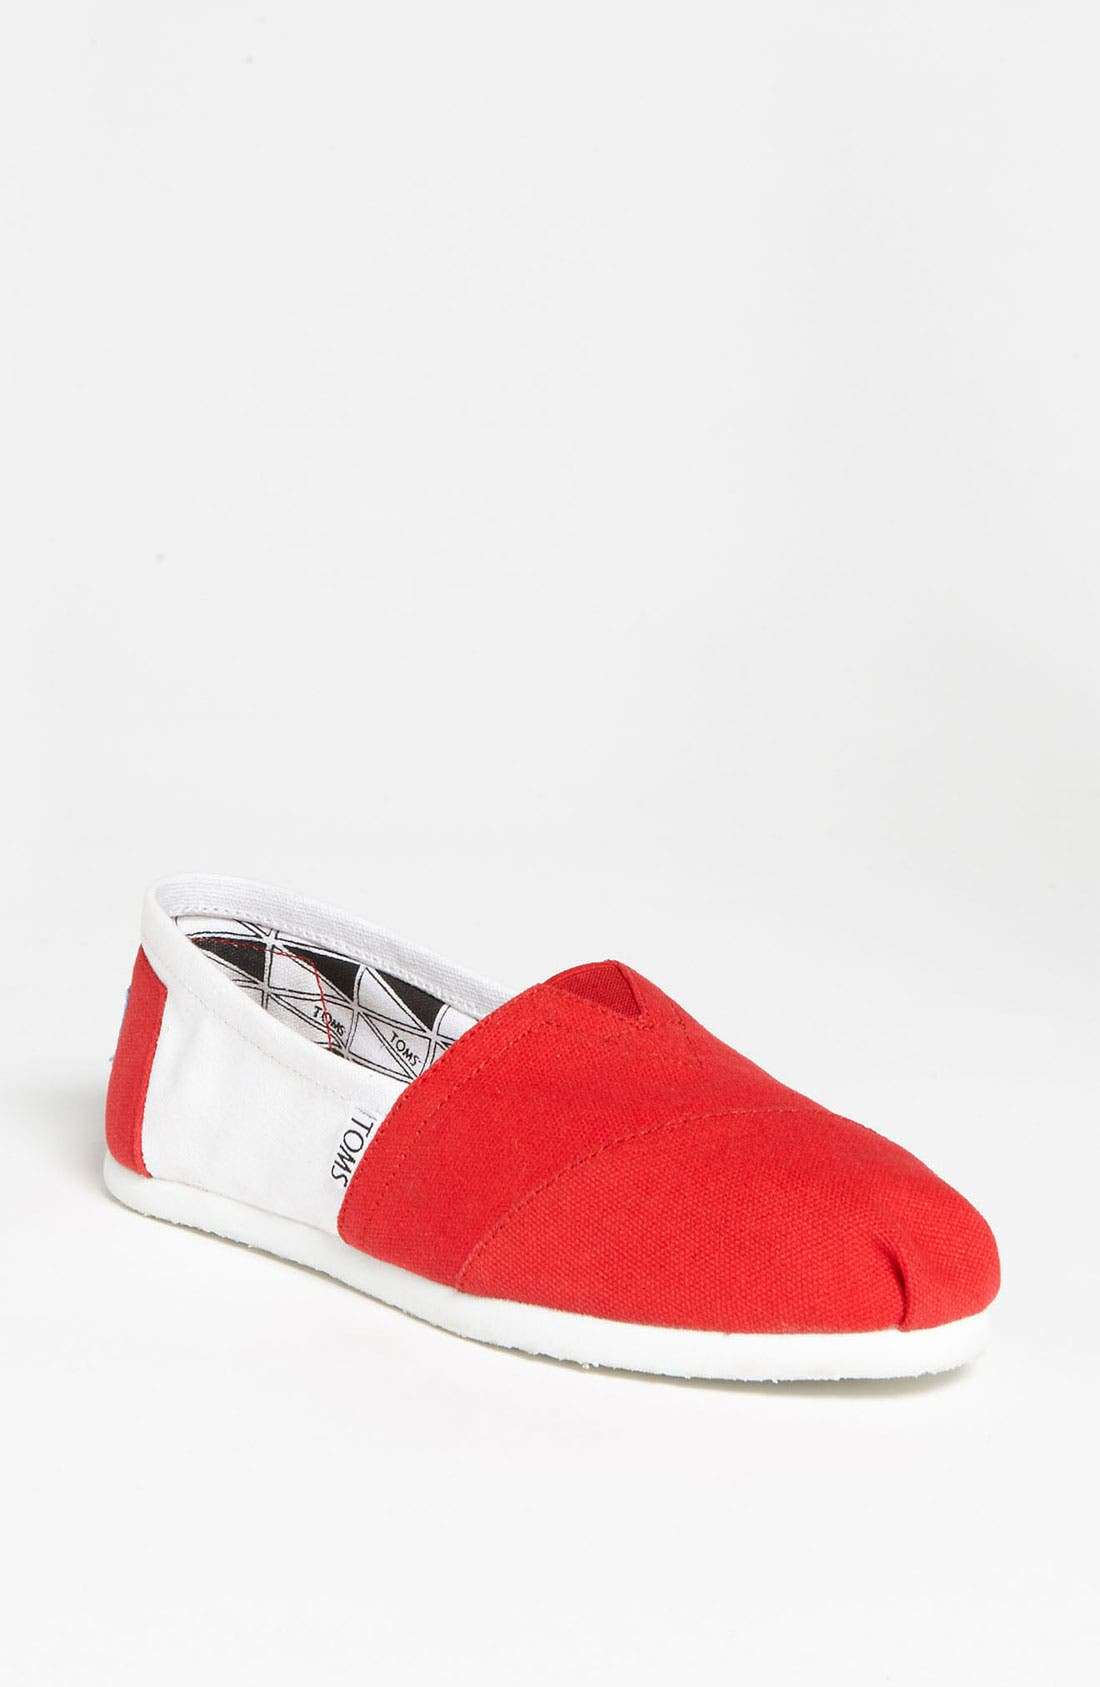 Alternate Image 1 Selected - TOMS 'Campus Classics - University of Wisconsin' Slip-On (Women)